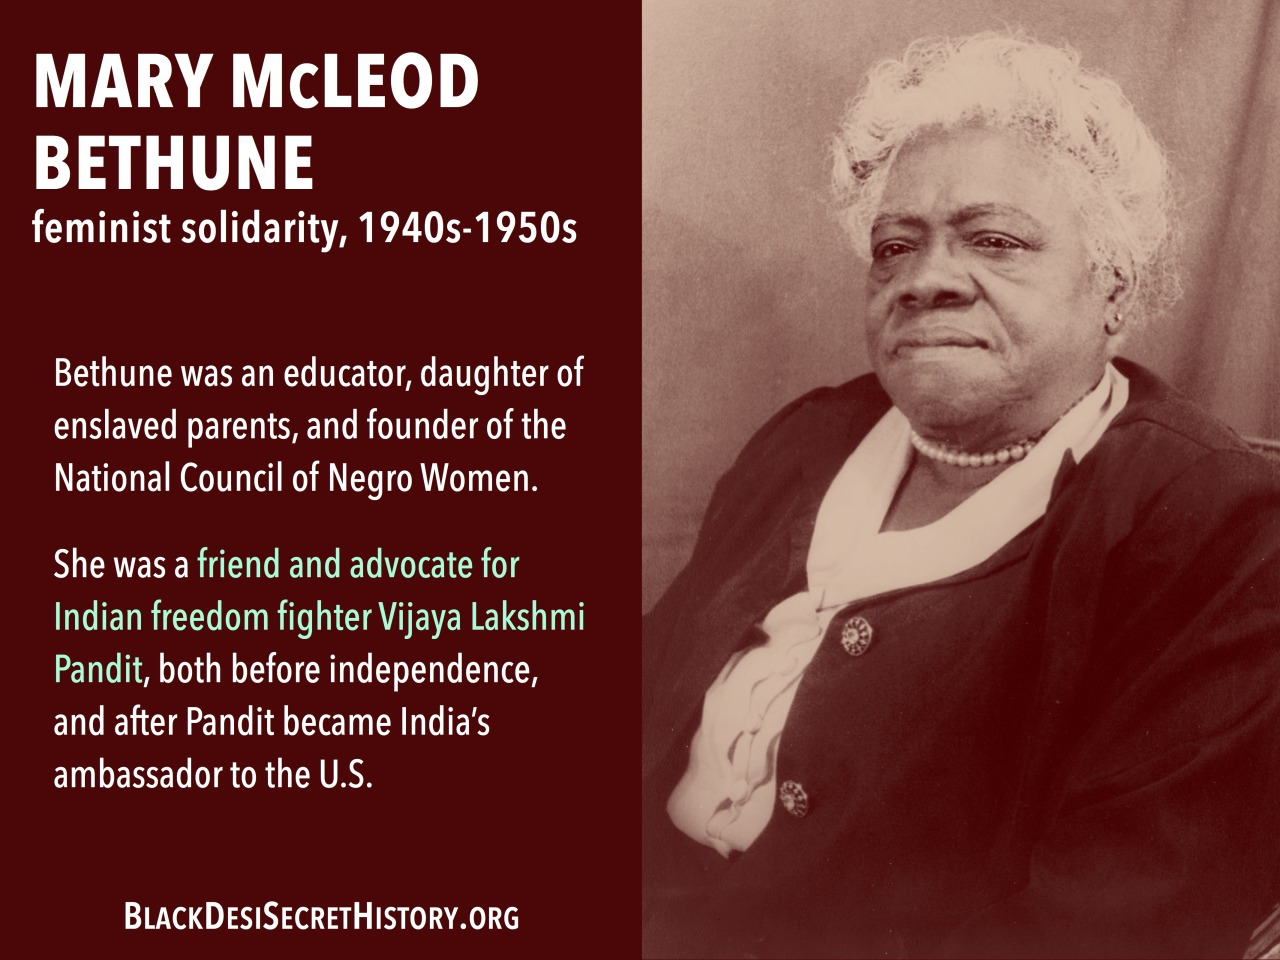 MARY McLEOD BETHUNE, feminist solidarity, 1940s-1950s: Bethune was an educator, daughter of enslaved parents, and founder of the National Council of Negro Women. She was a friend and advocate for Indian freedom fighter Vijaya Lakshmi Pandit, both before independence, and after Pandit became India's ambassador to the U.S.